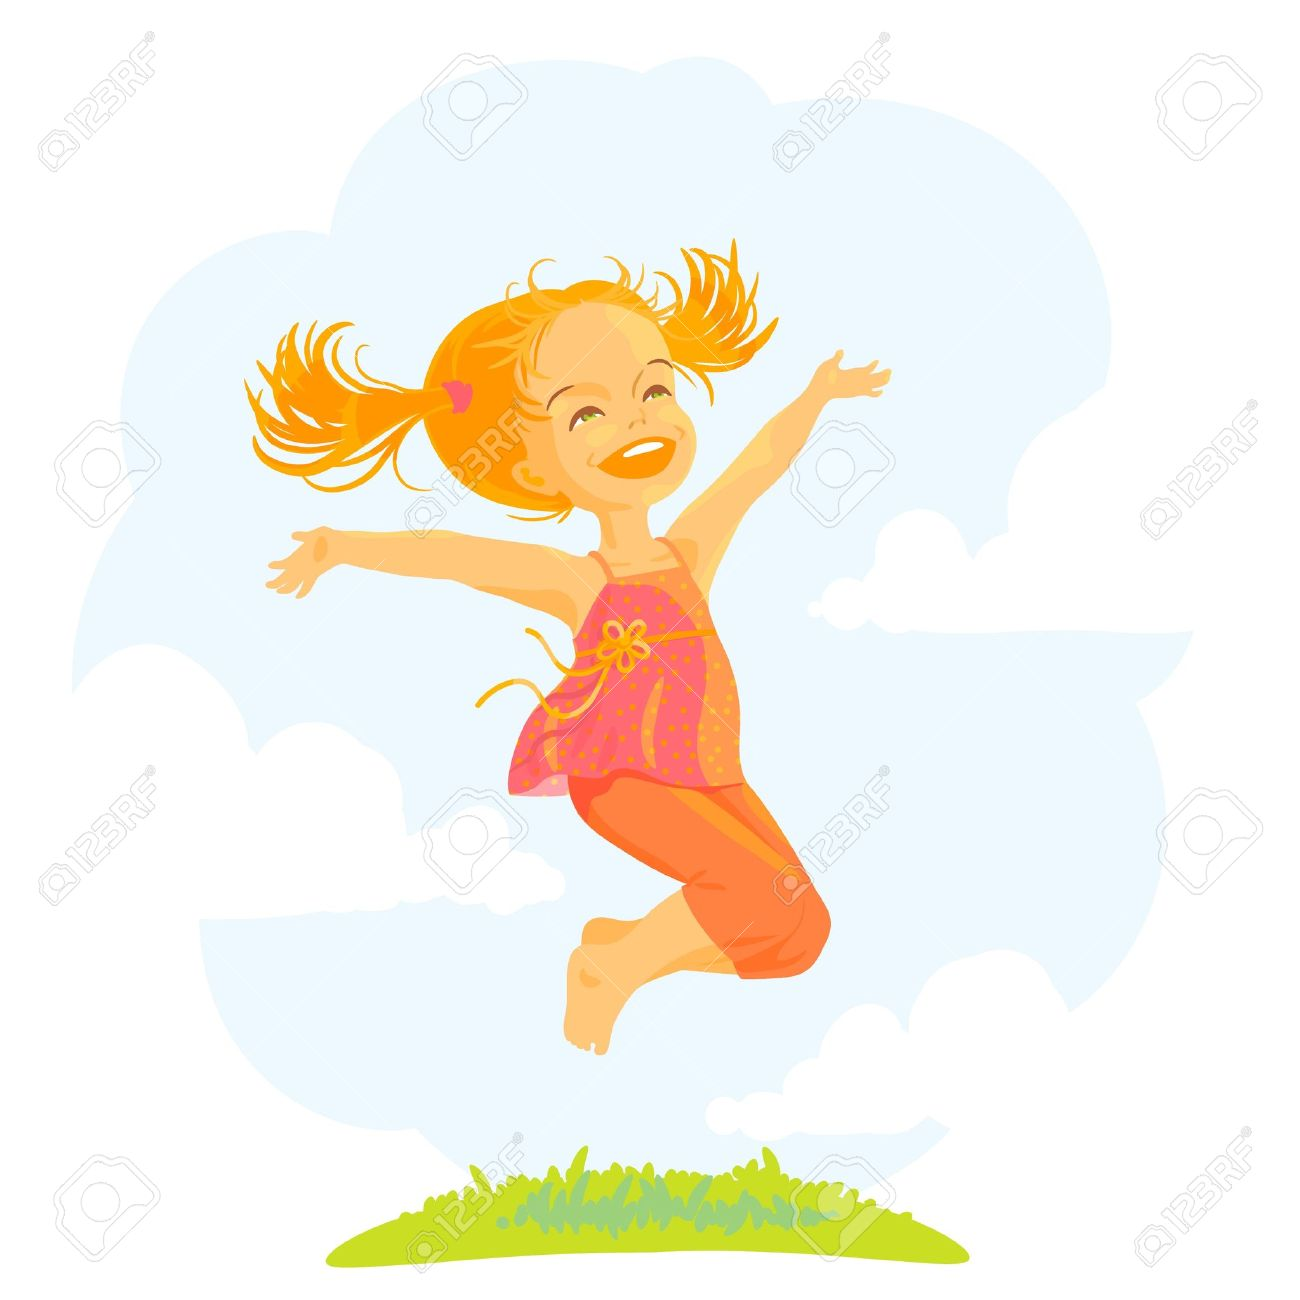 Sunny clipart woman. Free girl jump cliparts